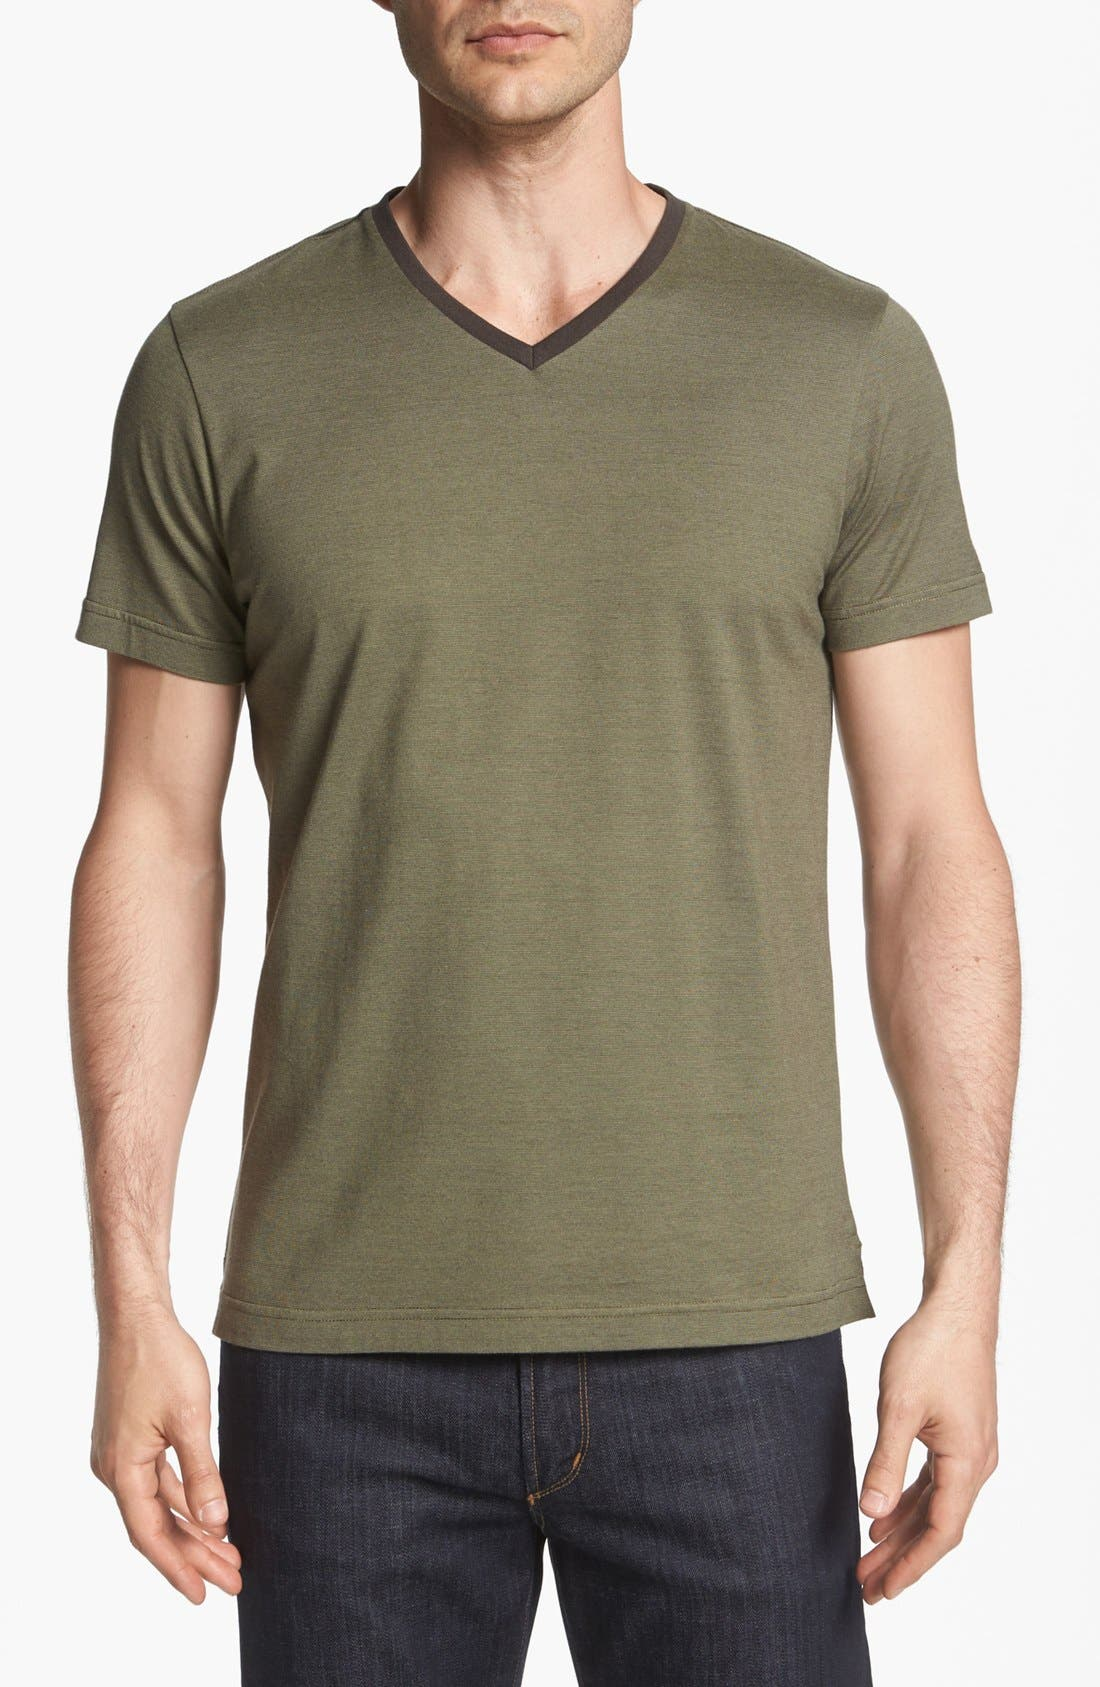 Main Image - Robert Barakett 'Connor' V-Neck T-shirt